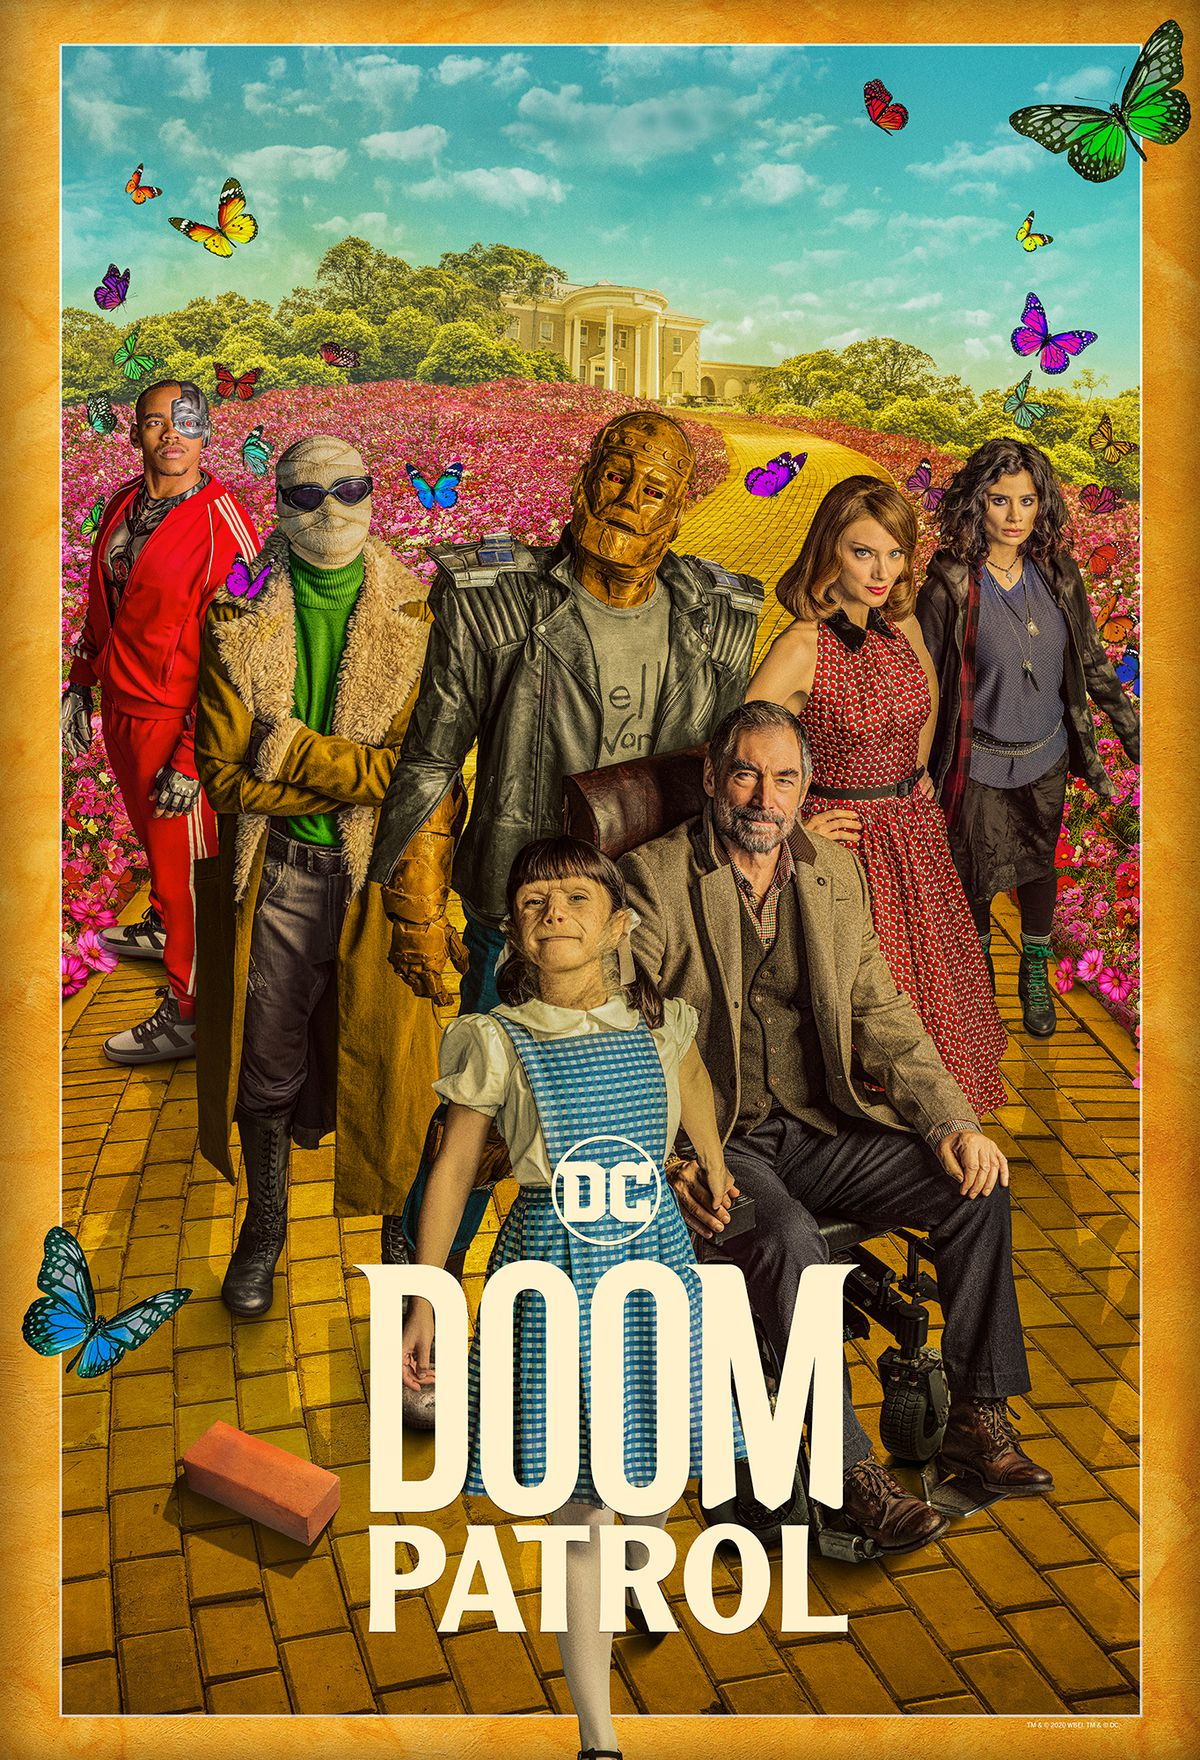 Cyborg, Negative Man, Robotman, Rita Farr, Crazy Jane, Danny the Brick, Dorothy Spinner, and the Chief on a poster for Doom Patrol season 2.